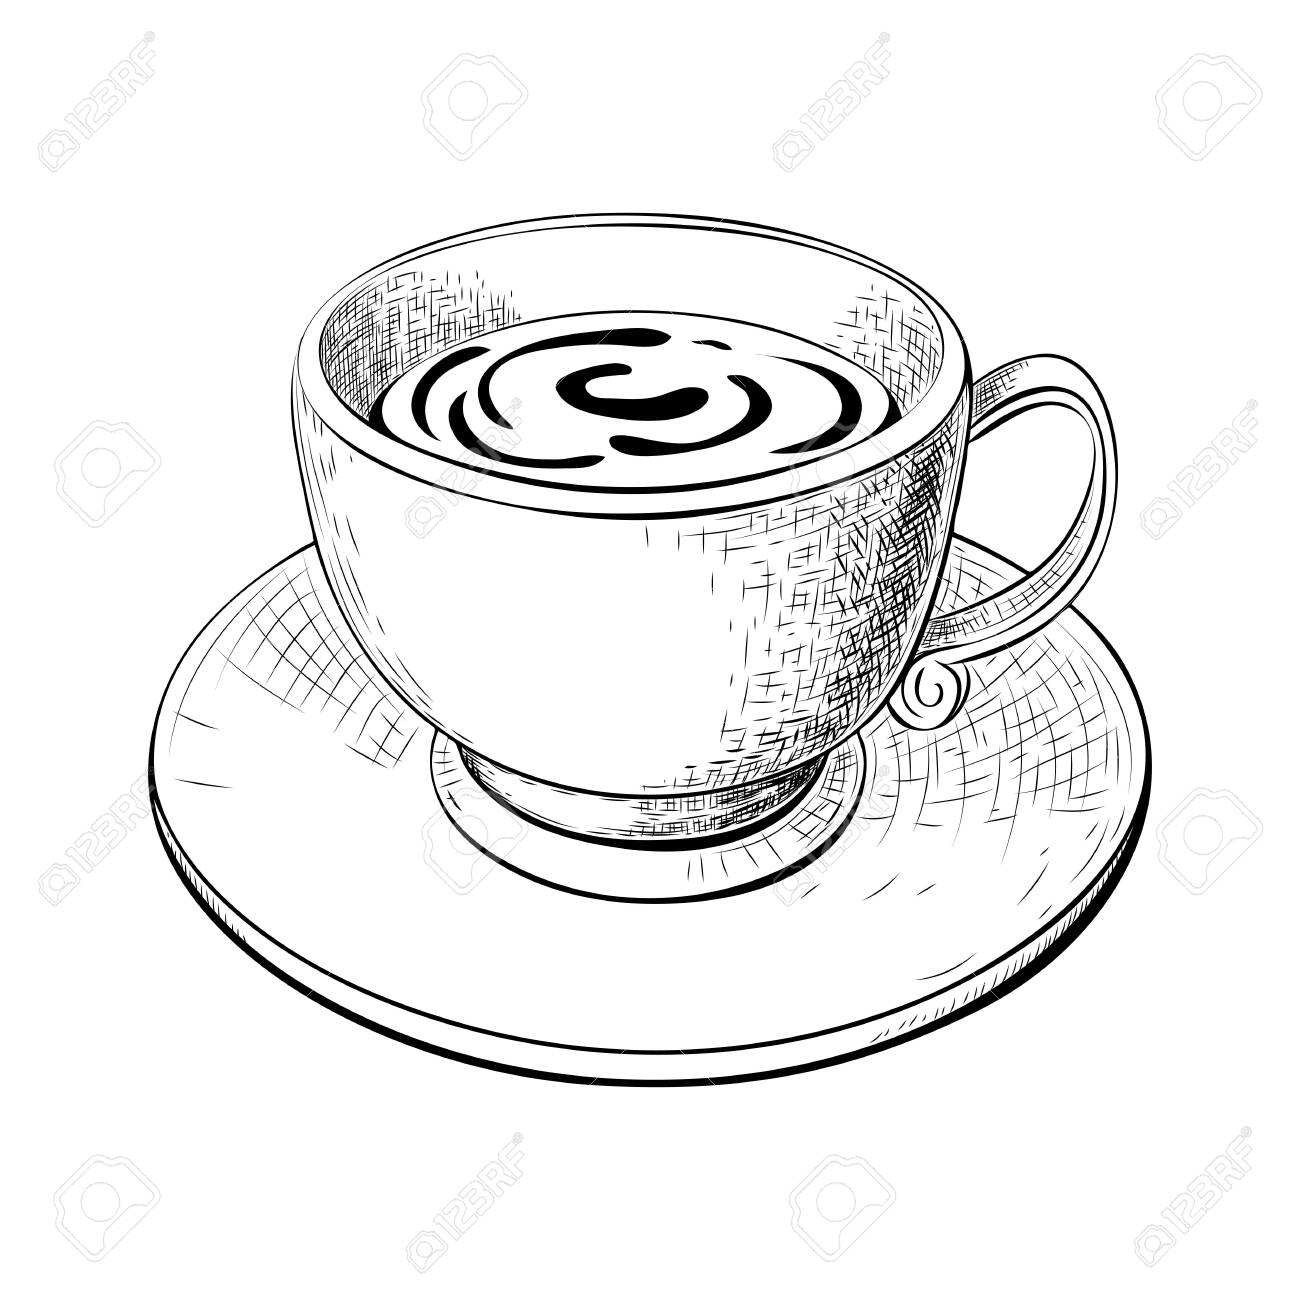 One Cup Of Coffee Or Tea With Saucer Hand Drawn Sketch Isolated Royalty Free Cliparts Vectors And Stock Illustration Image 153343468